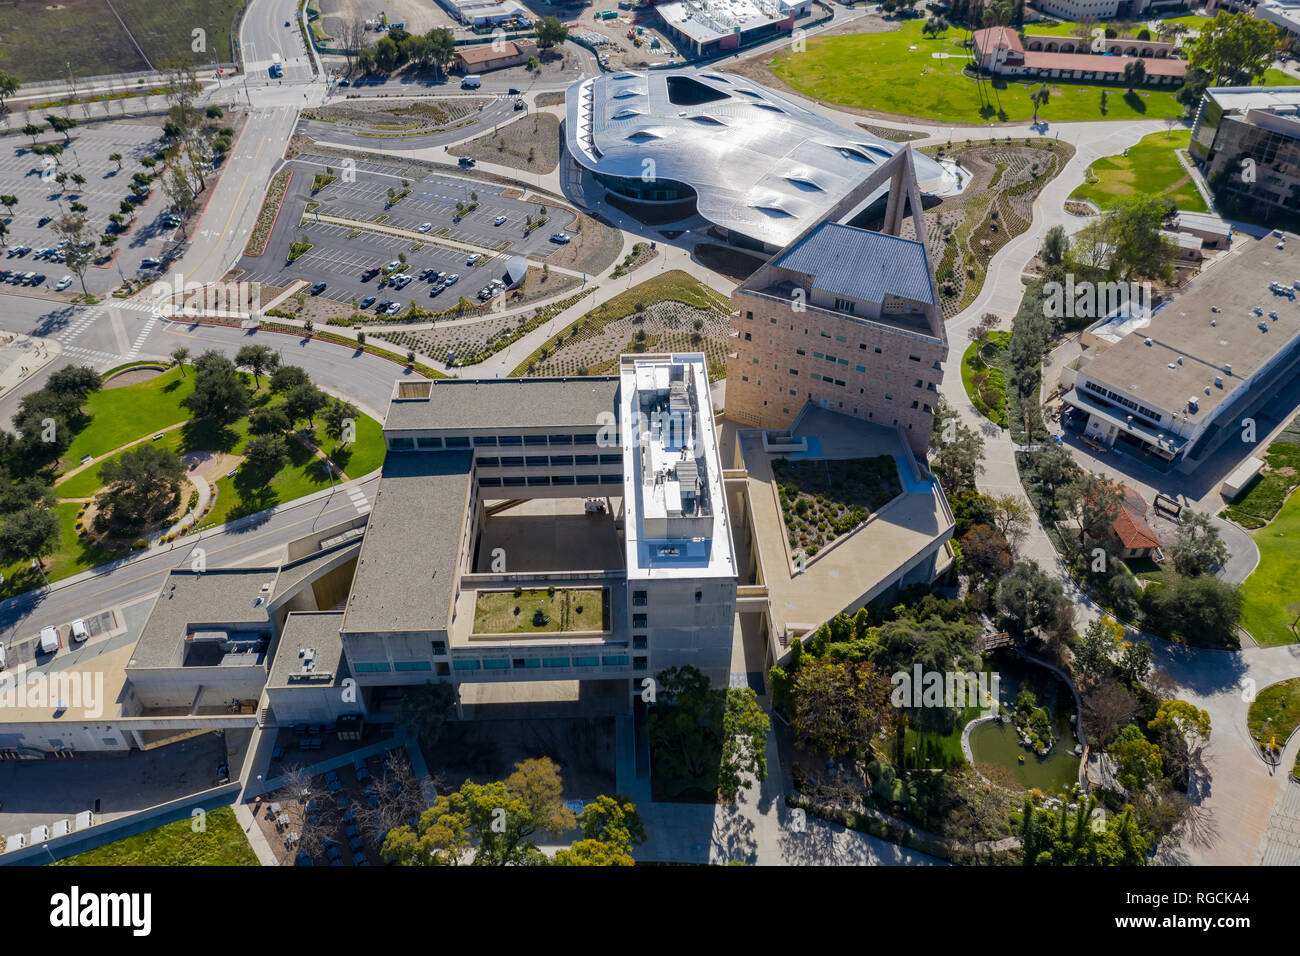 Aerial view of the Cal Poly Pomona campus, California - Stock Image